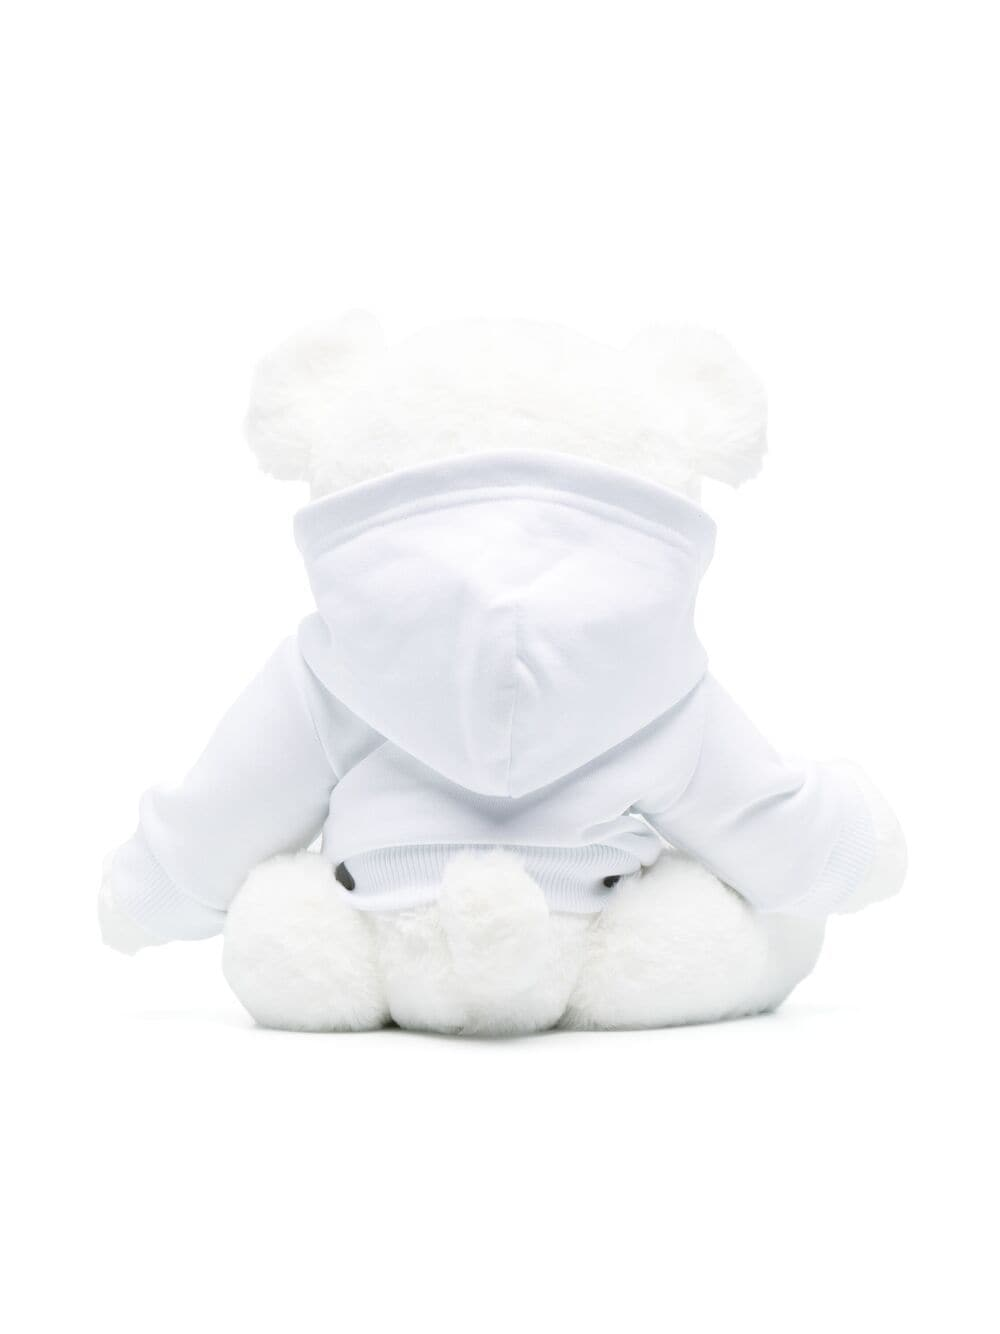 GIVENCHY KIDS Logo embroidered bear soft toy White